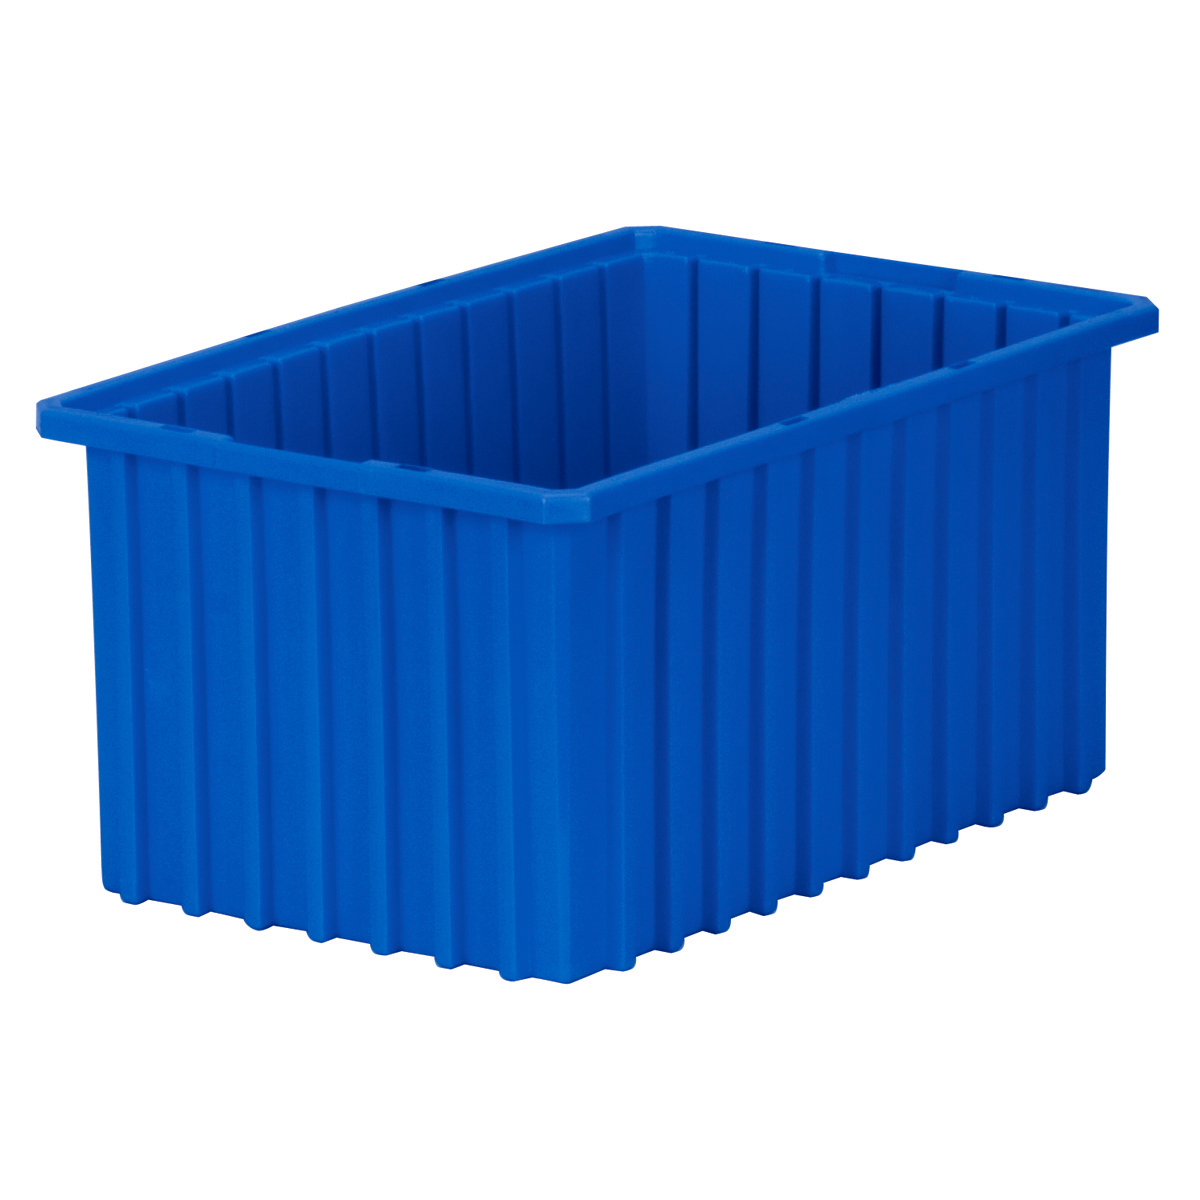 Akro-Grid Dividable Box 16-1/2 x 10-7/8 x 8, Blue (33168BLUE).  This item sold in carton quantities of 6.